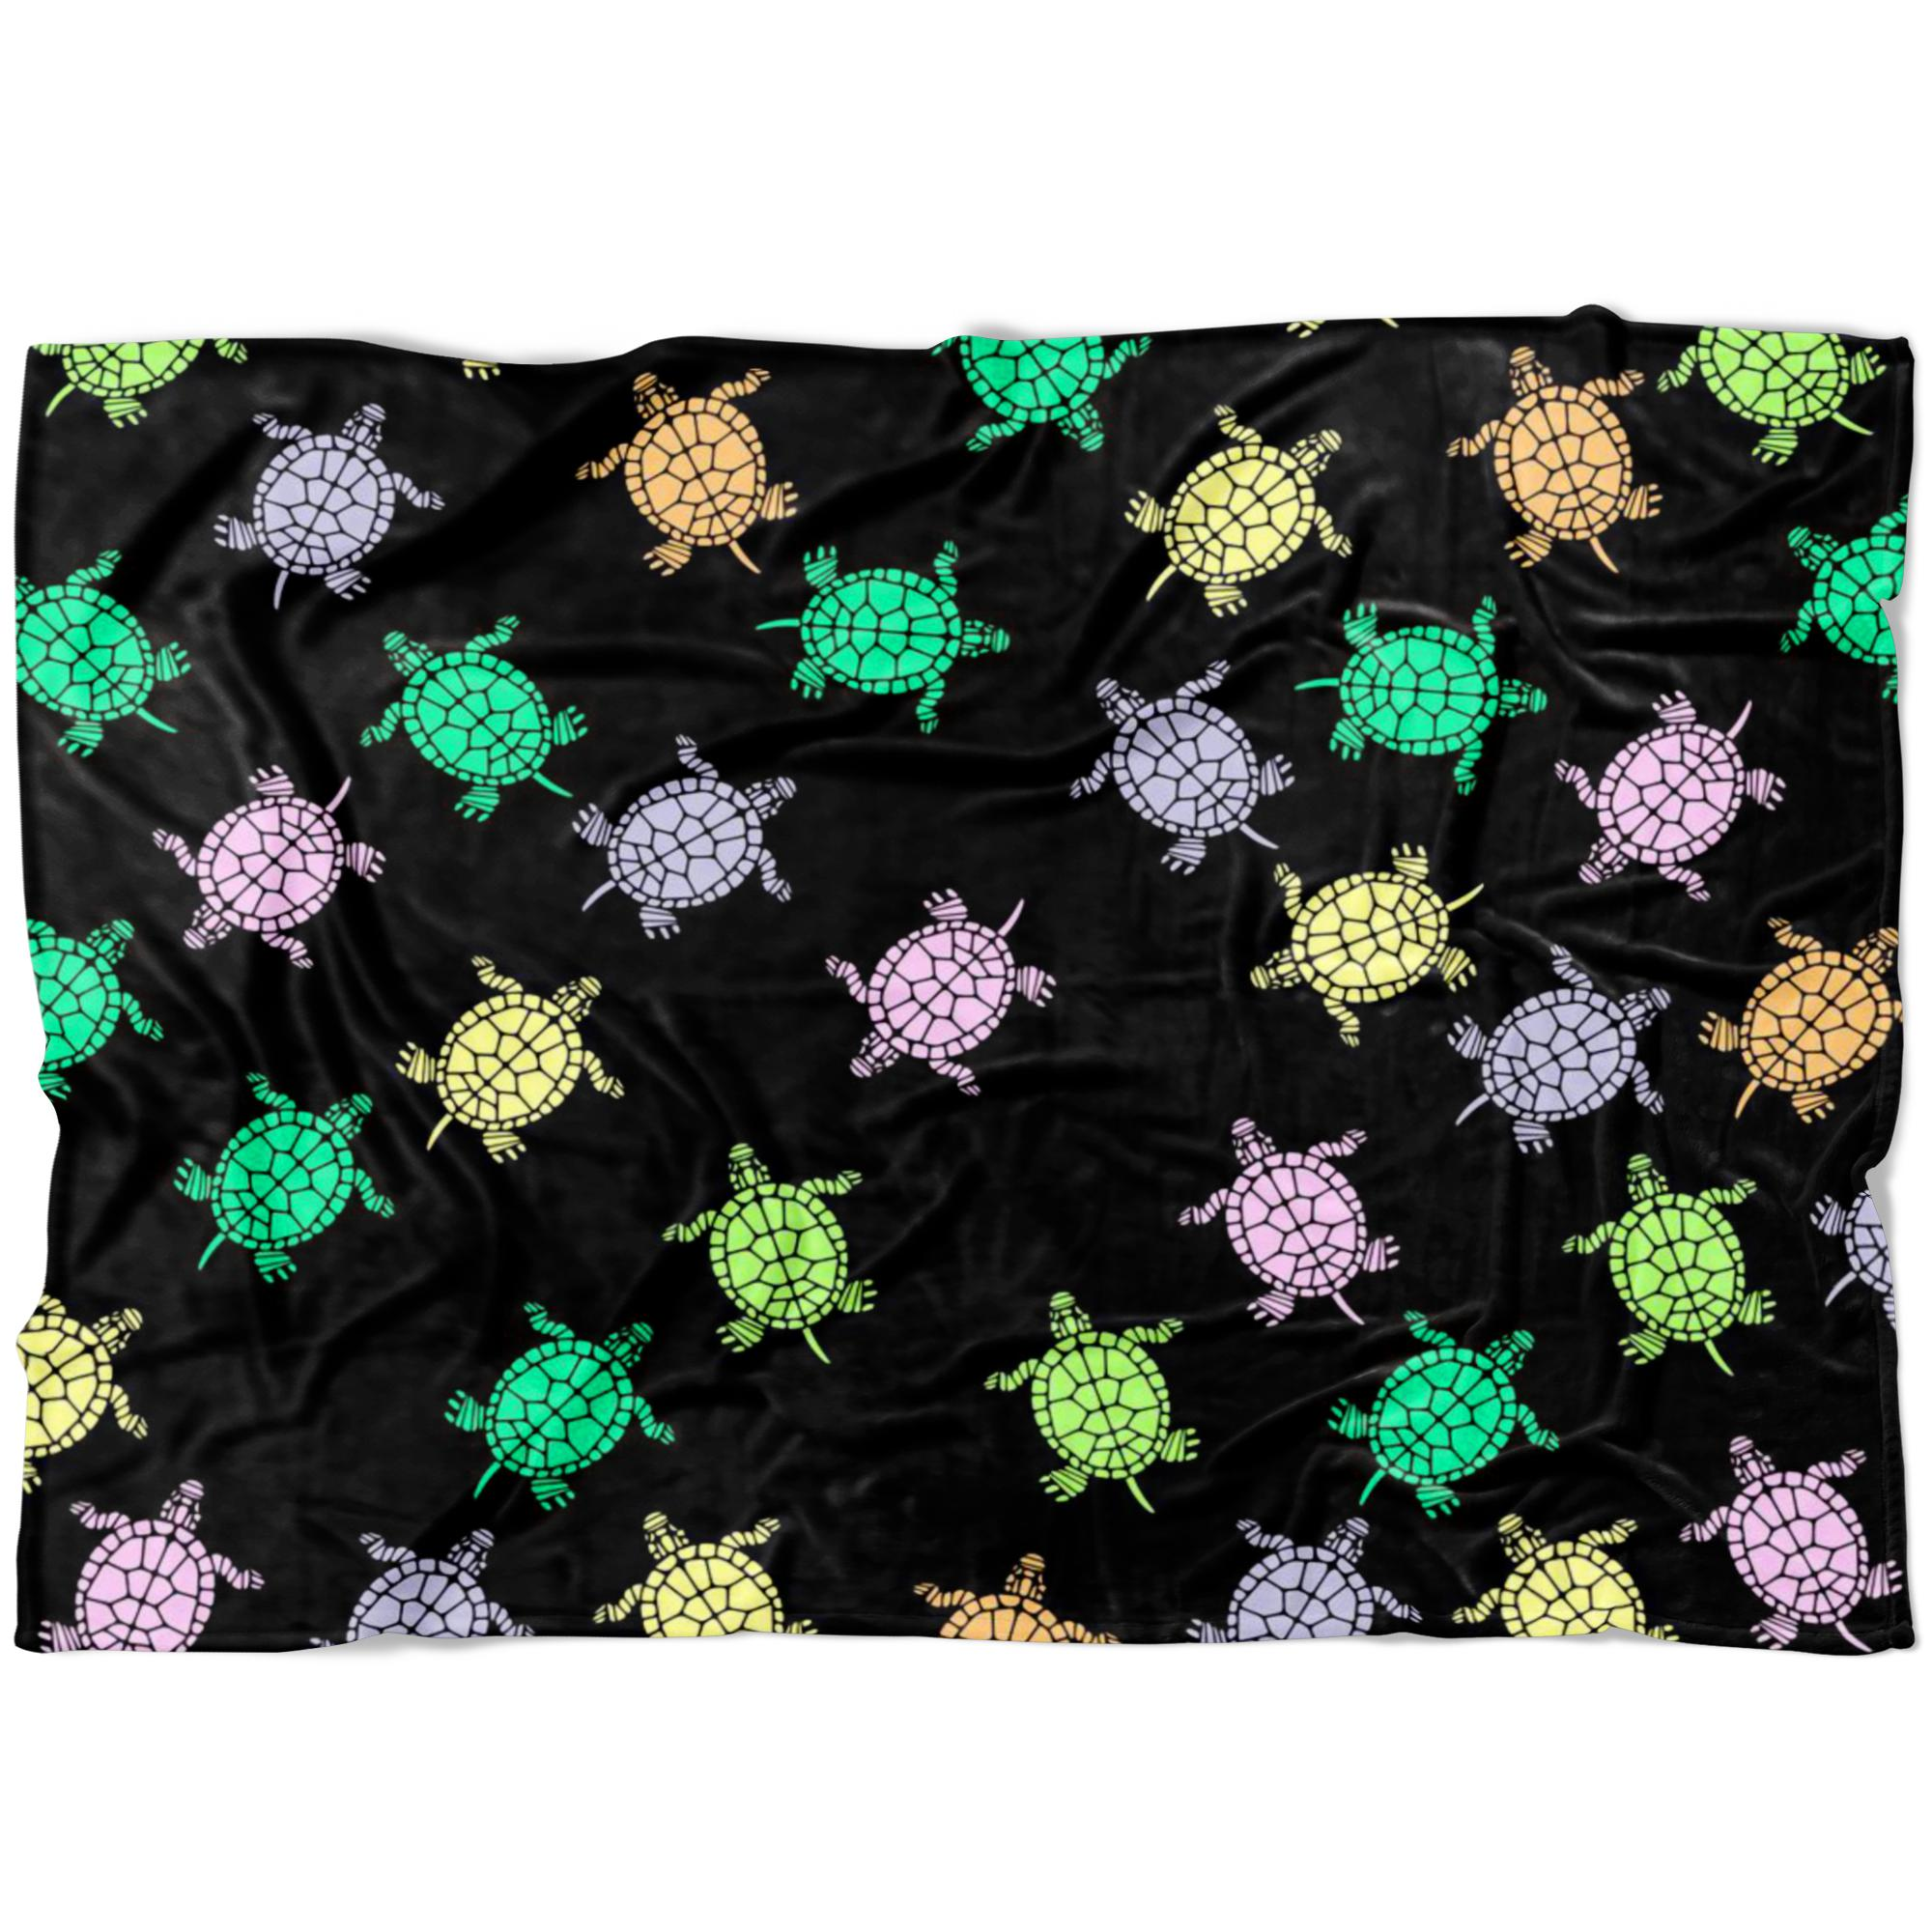 Sea Turtles Black Fleece Blanket-Blankets-I love Veterinary